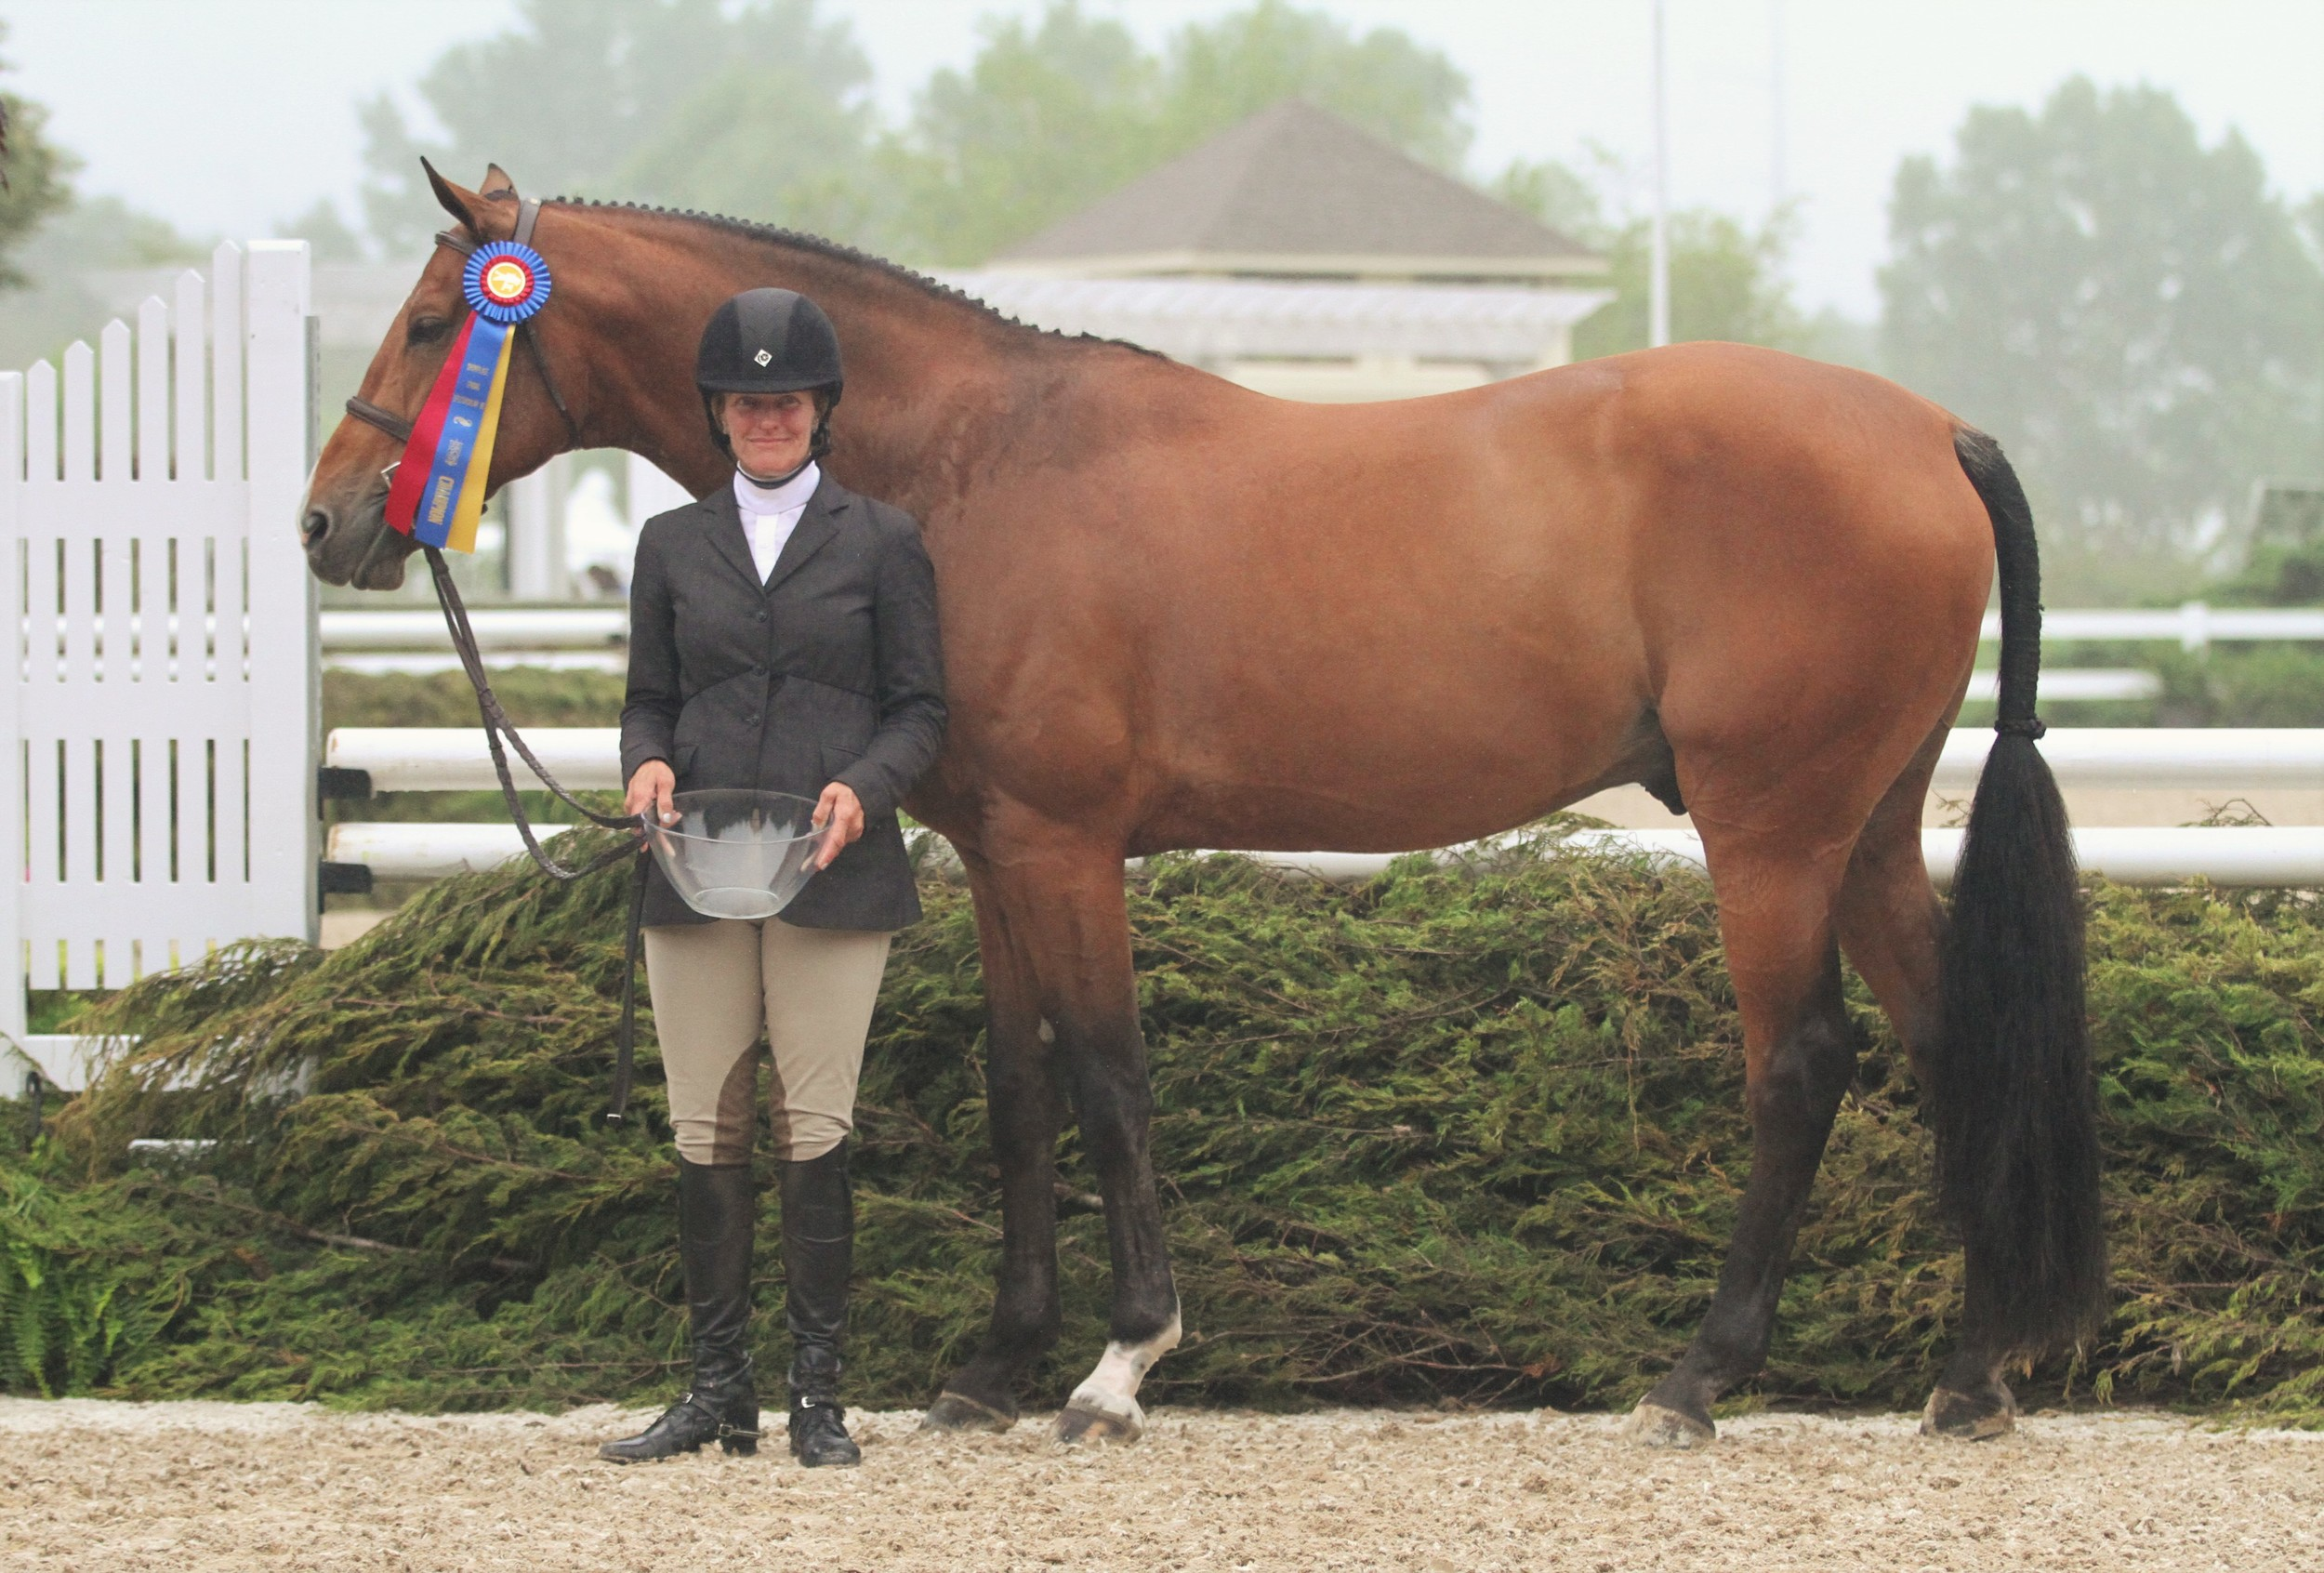 First Year Green $2,500 Open Hunter Classic Because, owned by Jane Gaston and ridden by Kelley Farmer, topped the First Year Green division and won the Open Hunter Classic.